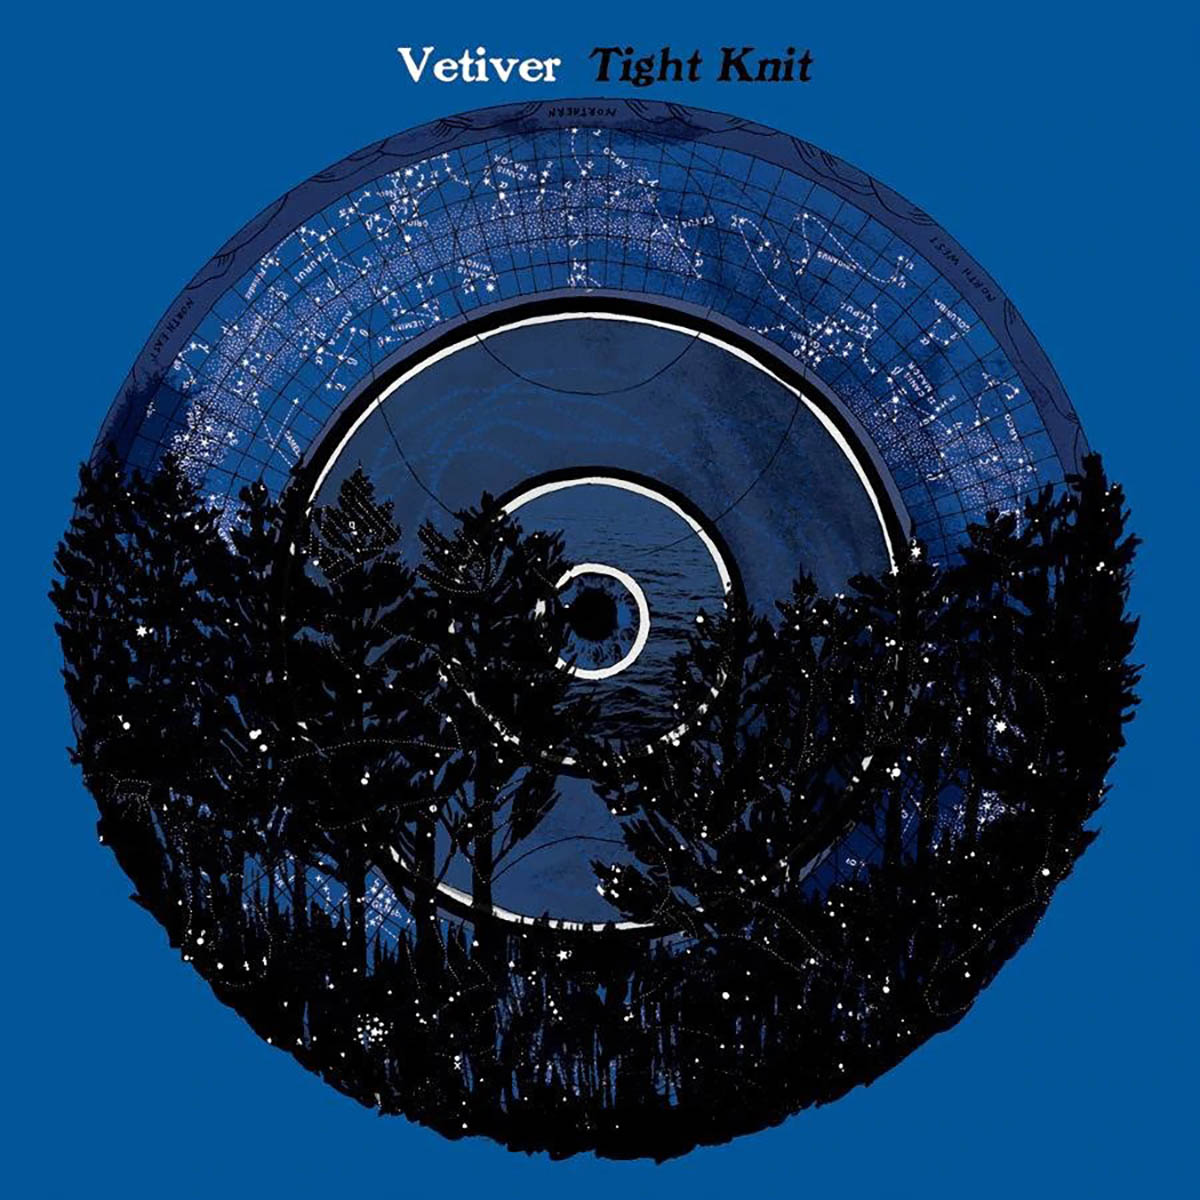 Vetiver, Tight Knit